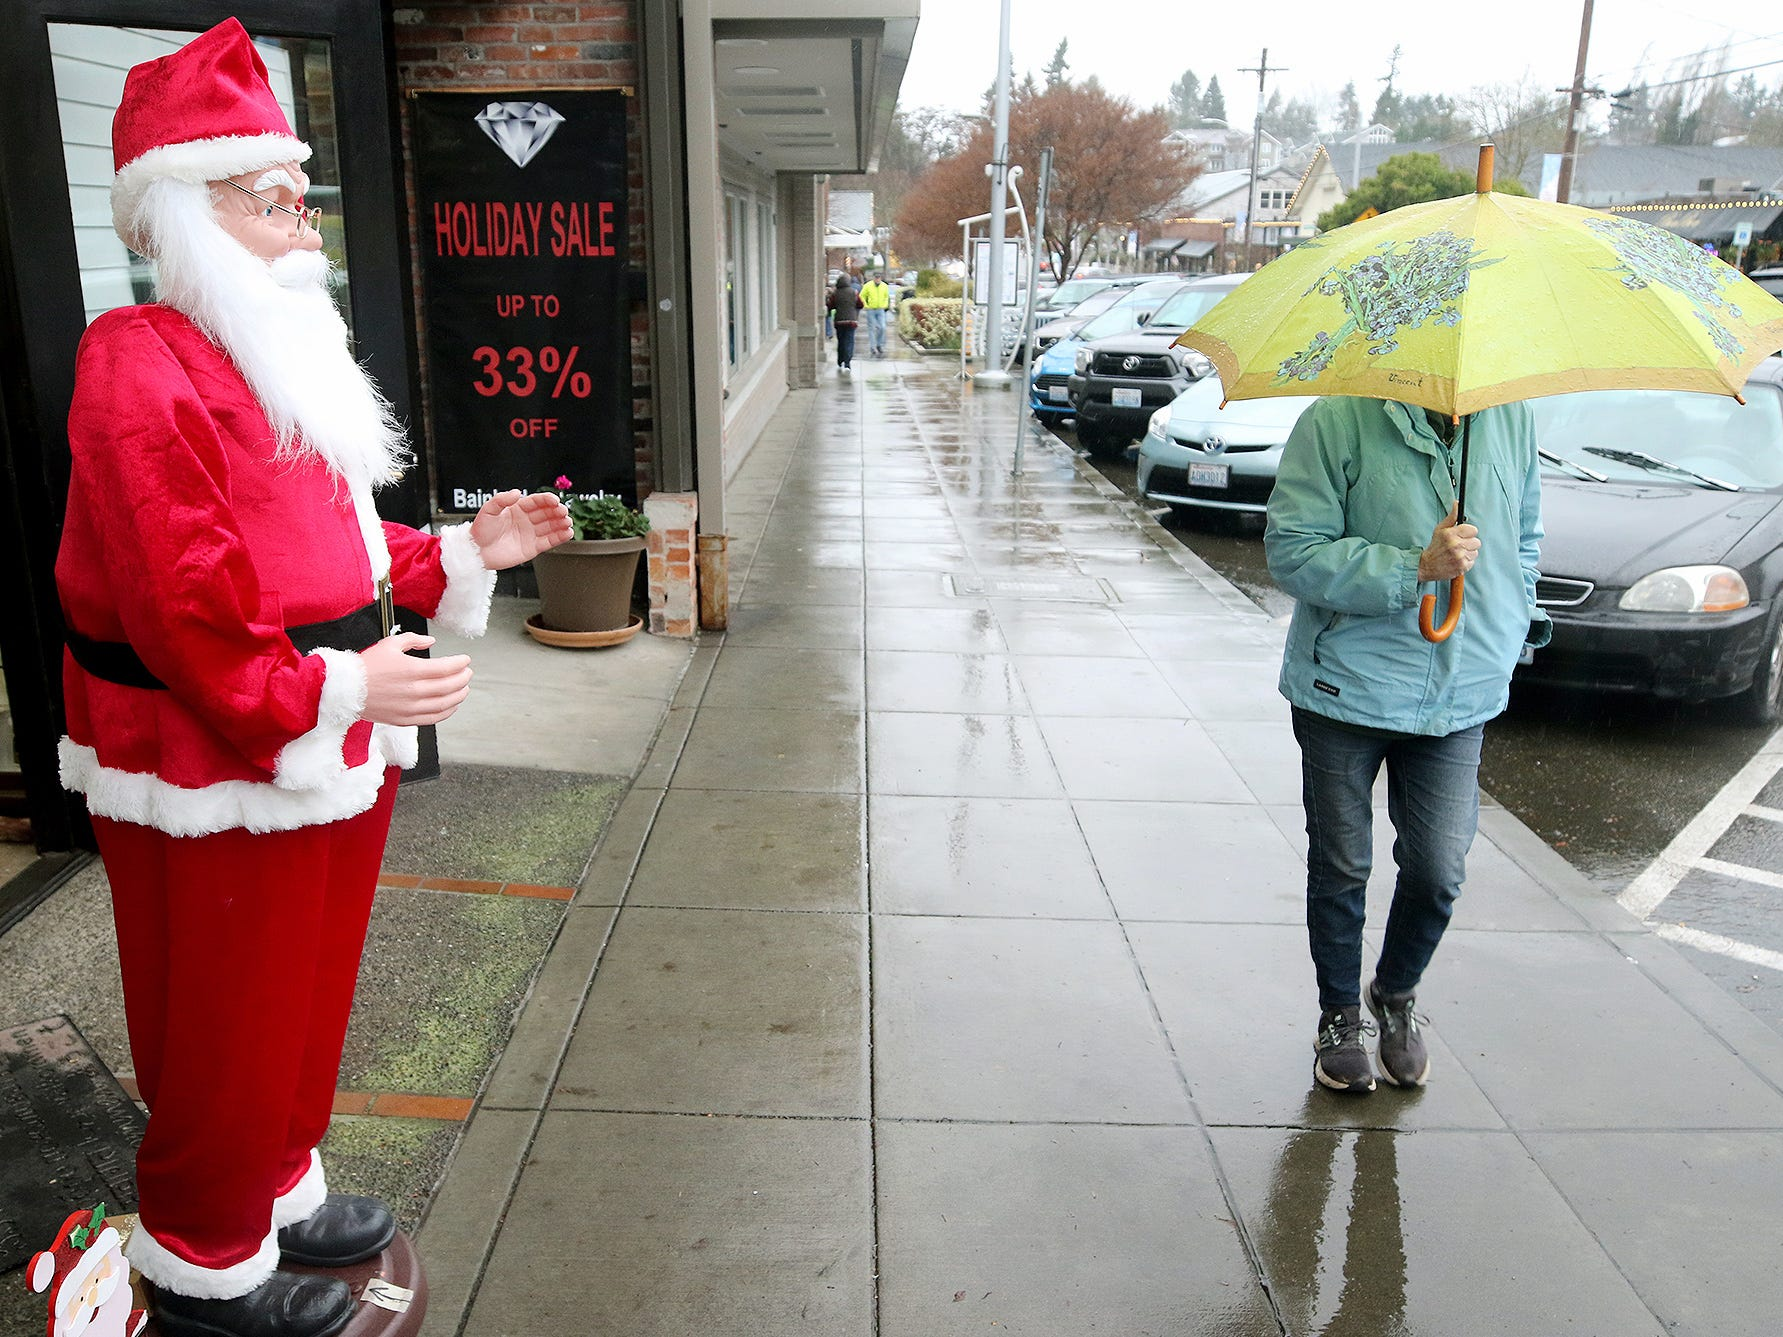 It was a wet and rainy downtown Winslow as Santa greets visitors outside of the Bainbridge Diamonds and Jewelry store on Tuesday, Dec, 11, 2018.